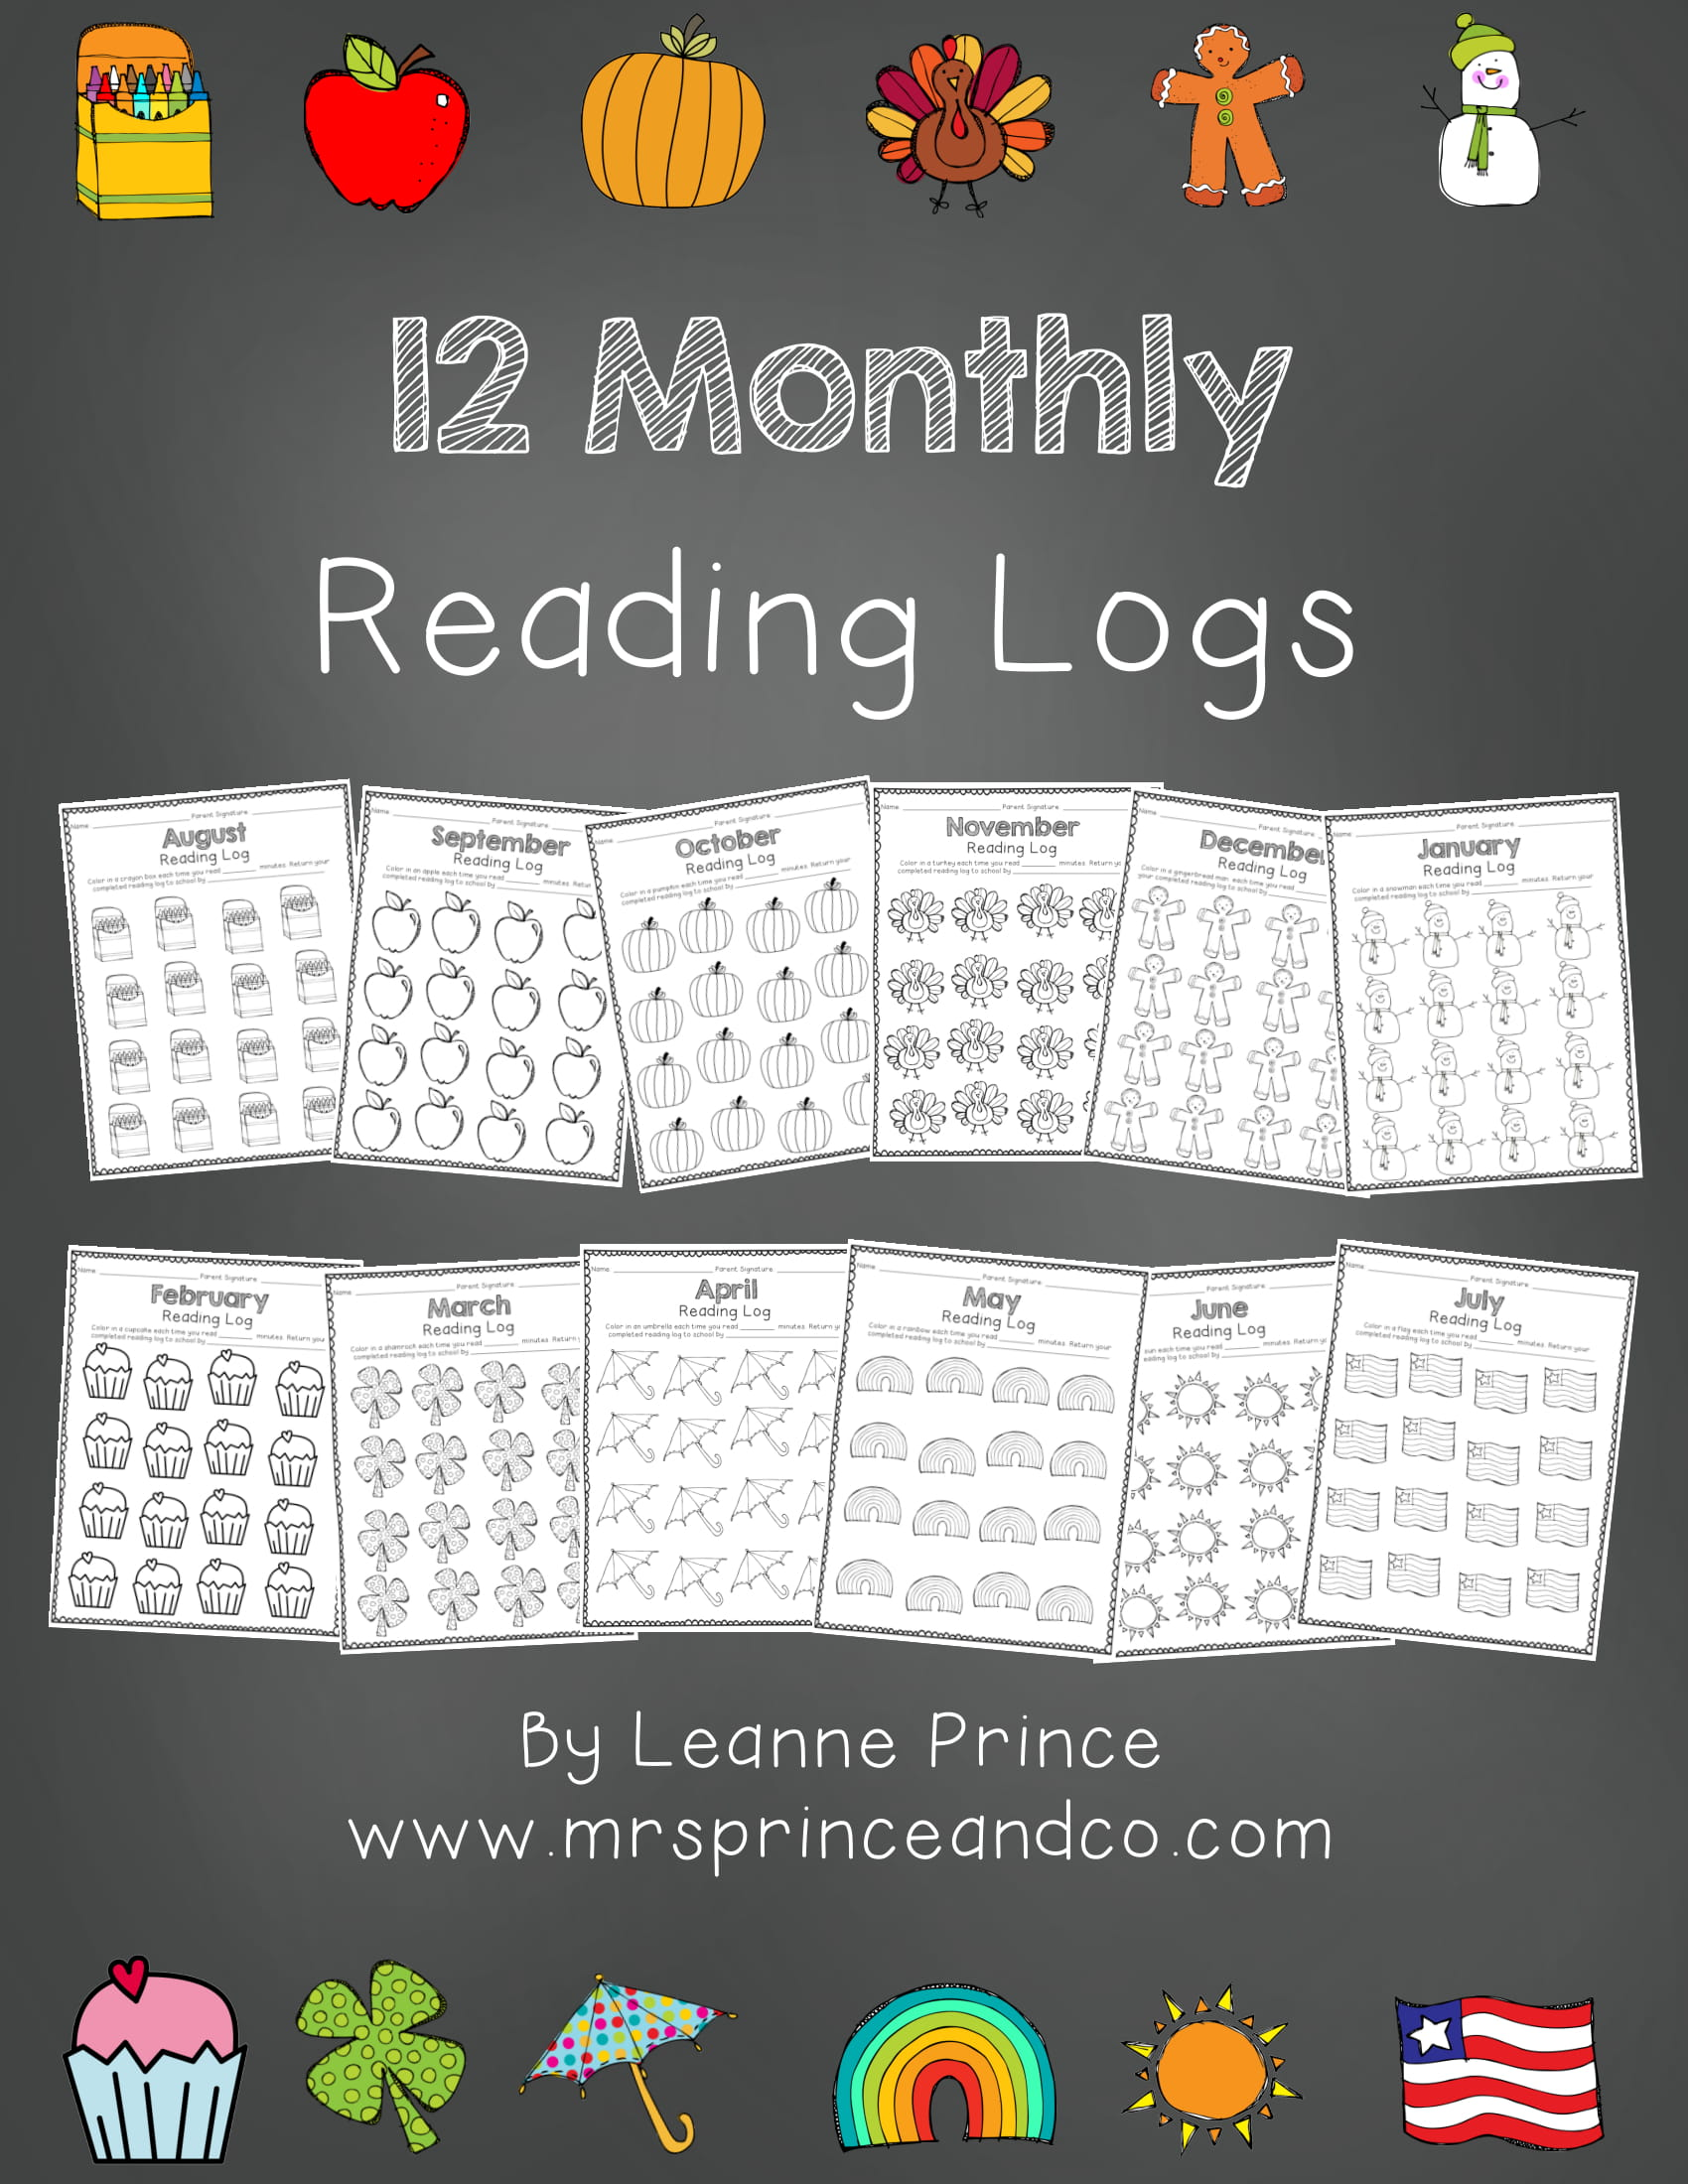 monthly reading logs for kids example